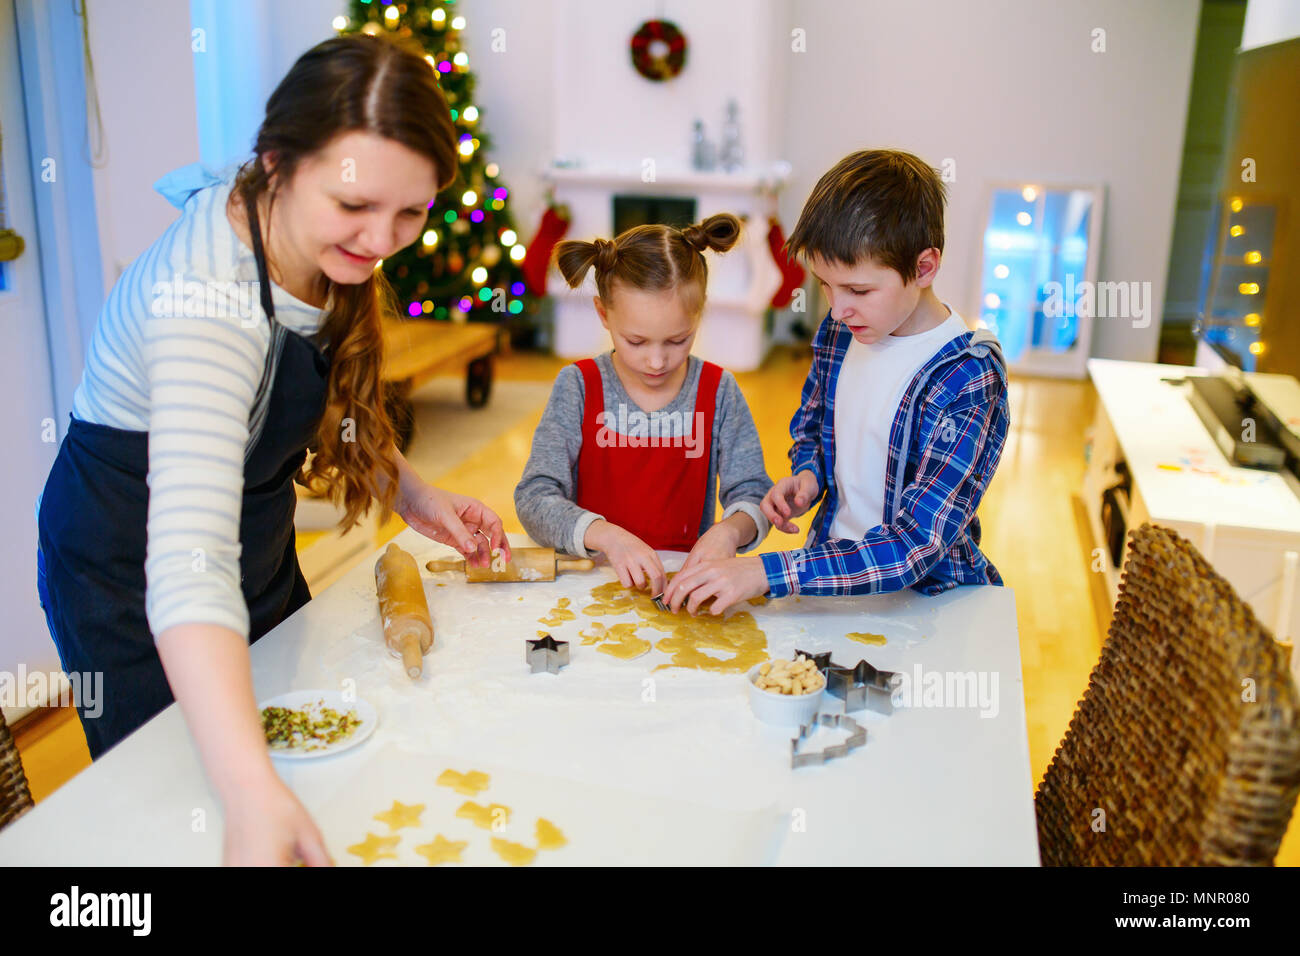 Family of mother and kids baking cookies at home on Xmas eve. Beautifully decorated room, Christmas tree and lights on background. - Stock Image